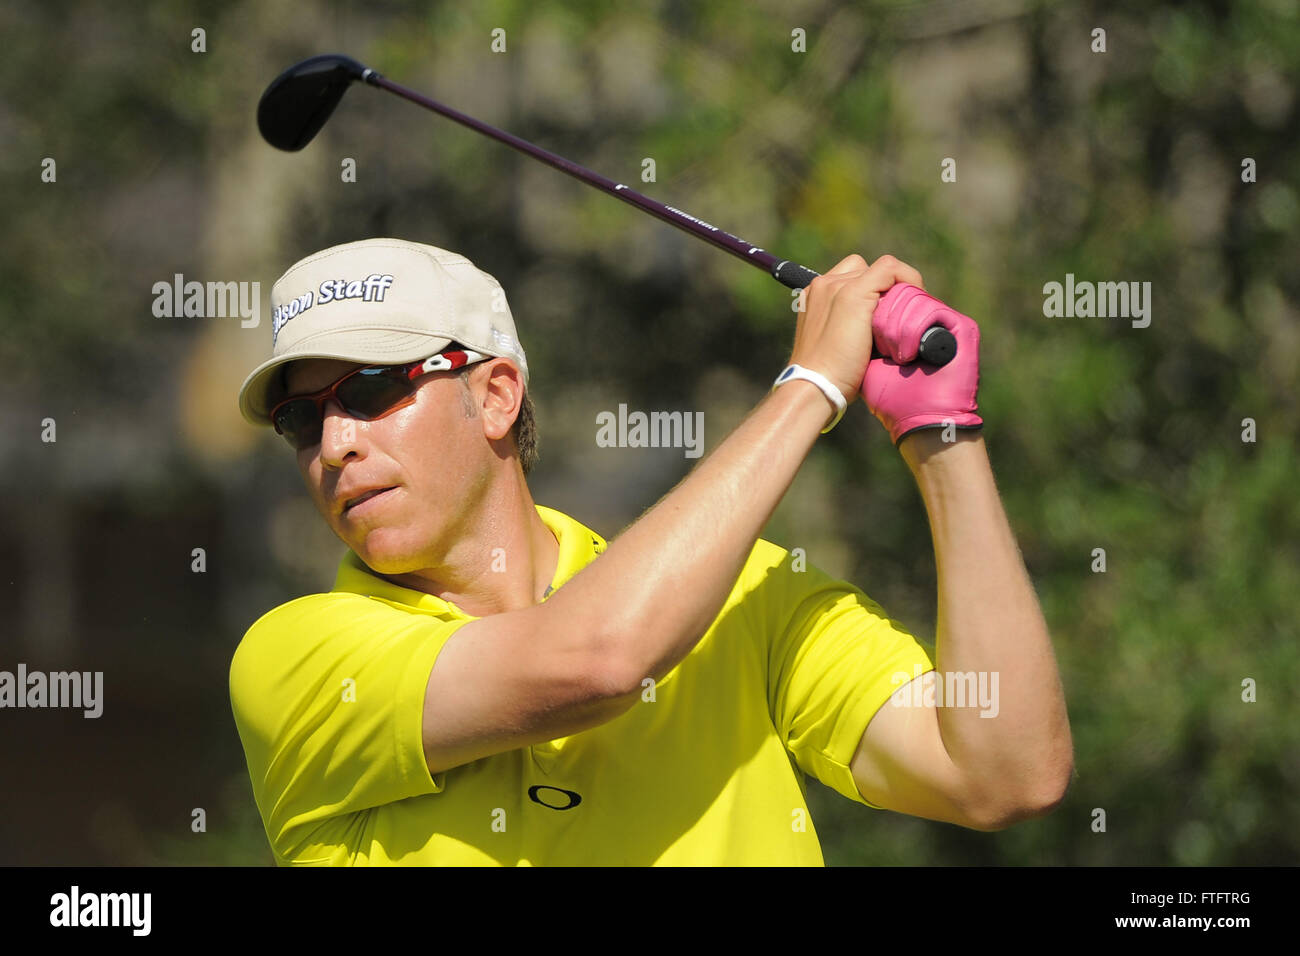 March 23, 2012 - Orlando, Fla, USA - Ricky Barnes during the second round of the Arnold Palmer Invitational at the Bay Hill Club and Lodge on March 23, ...